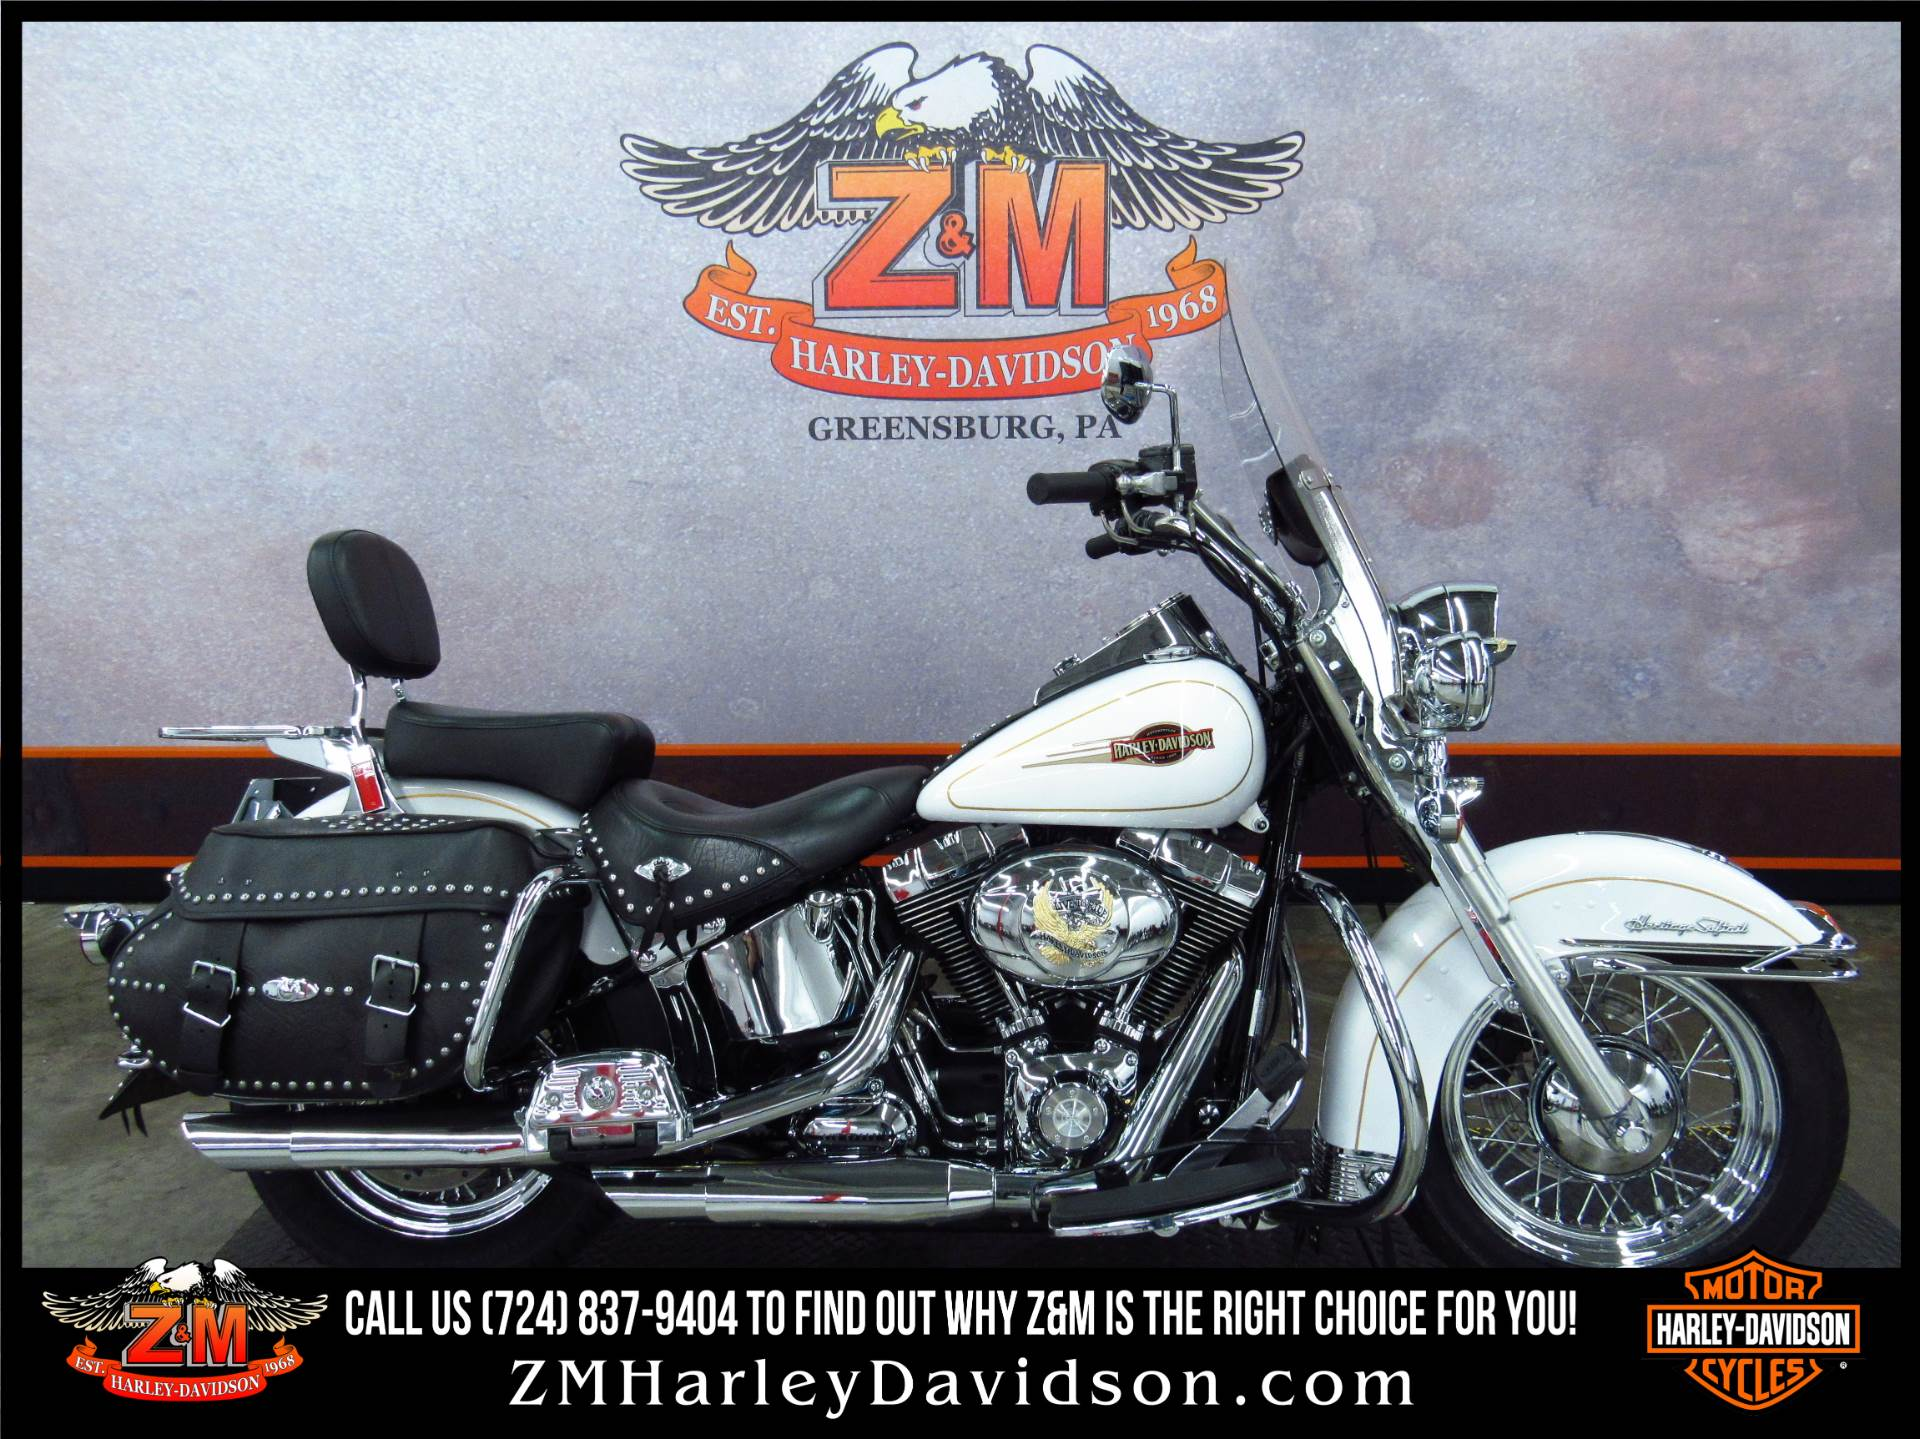 2008 Harley Davidson Heritage Softail Classic Motorcycles In Greensburg Pennsylvania